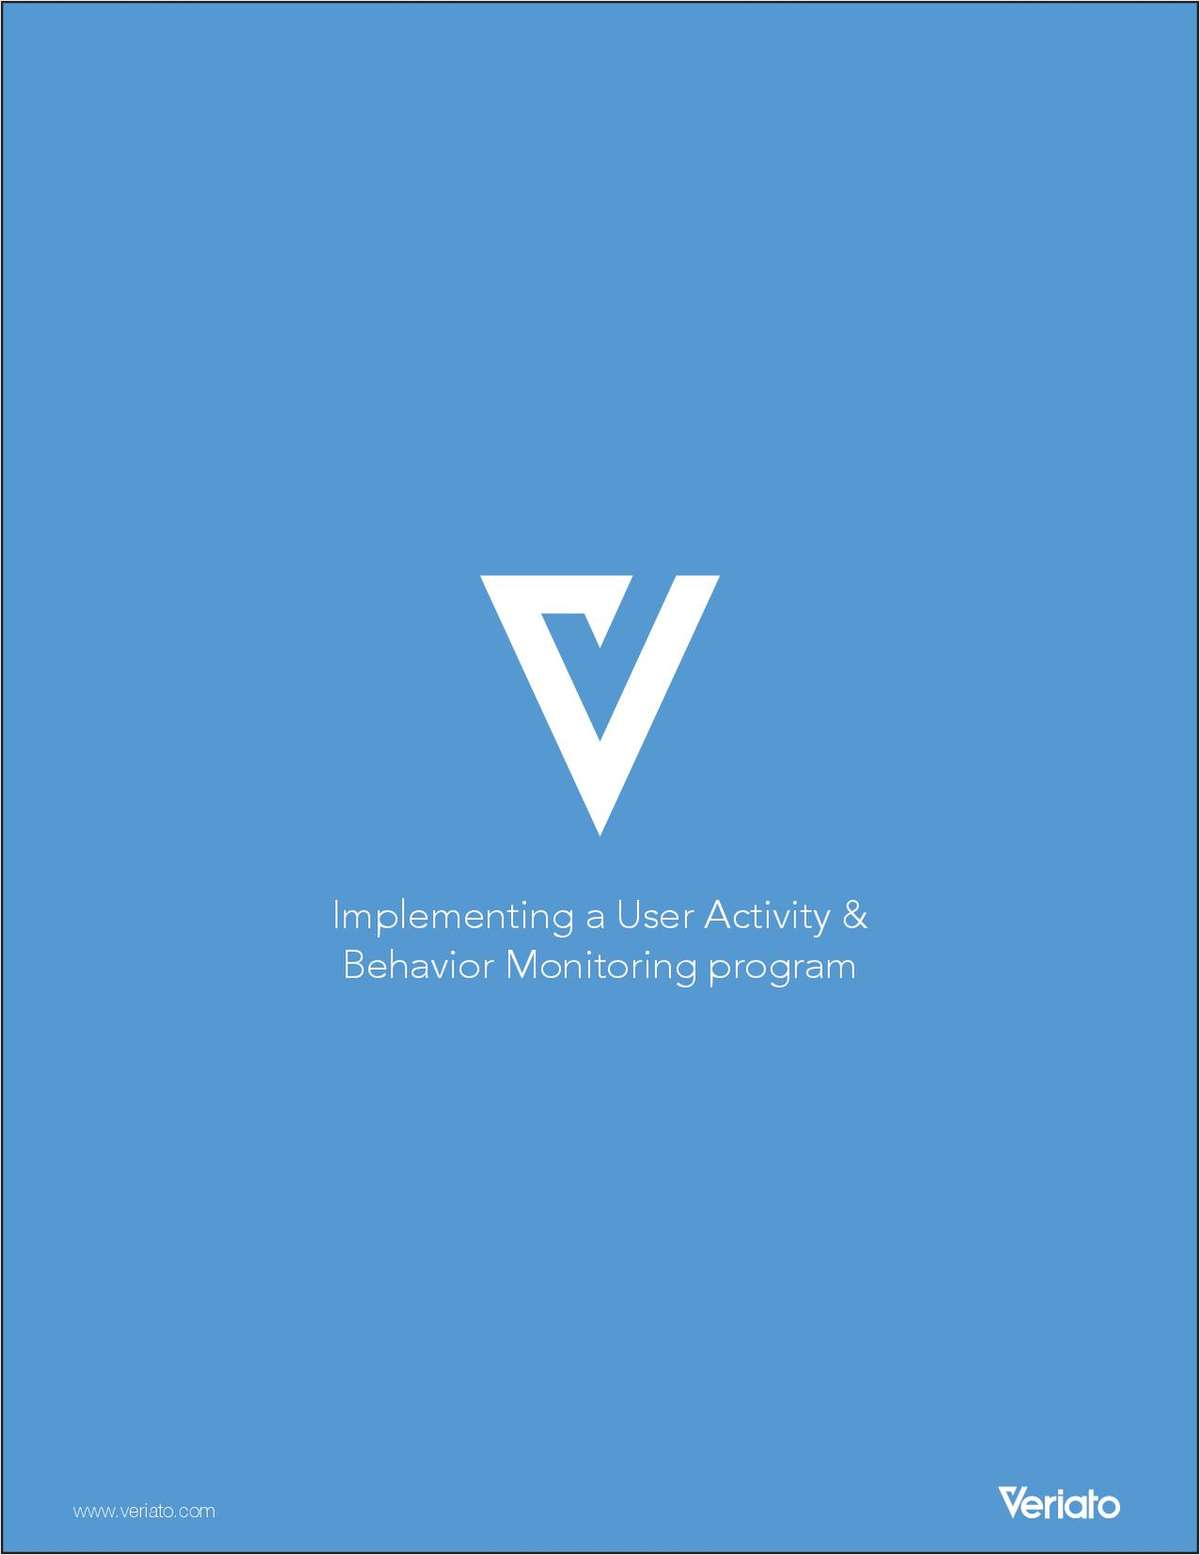 Implementing a User Activity and Behavior Monitoring Program